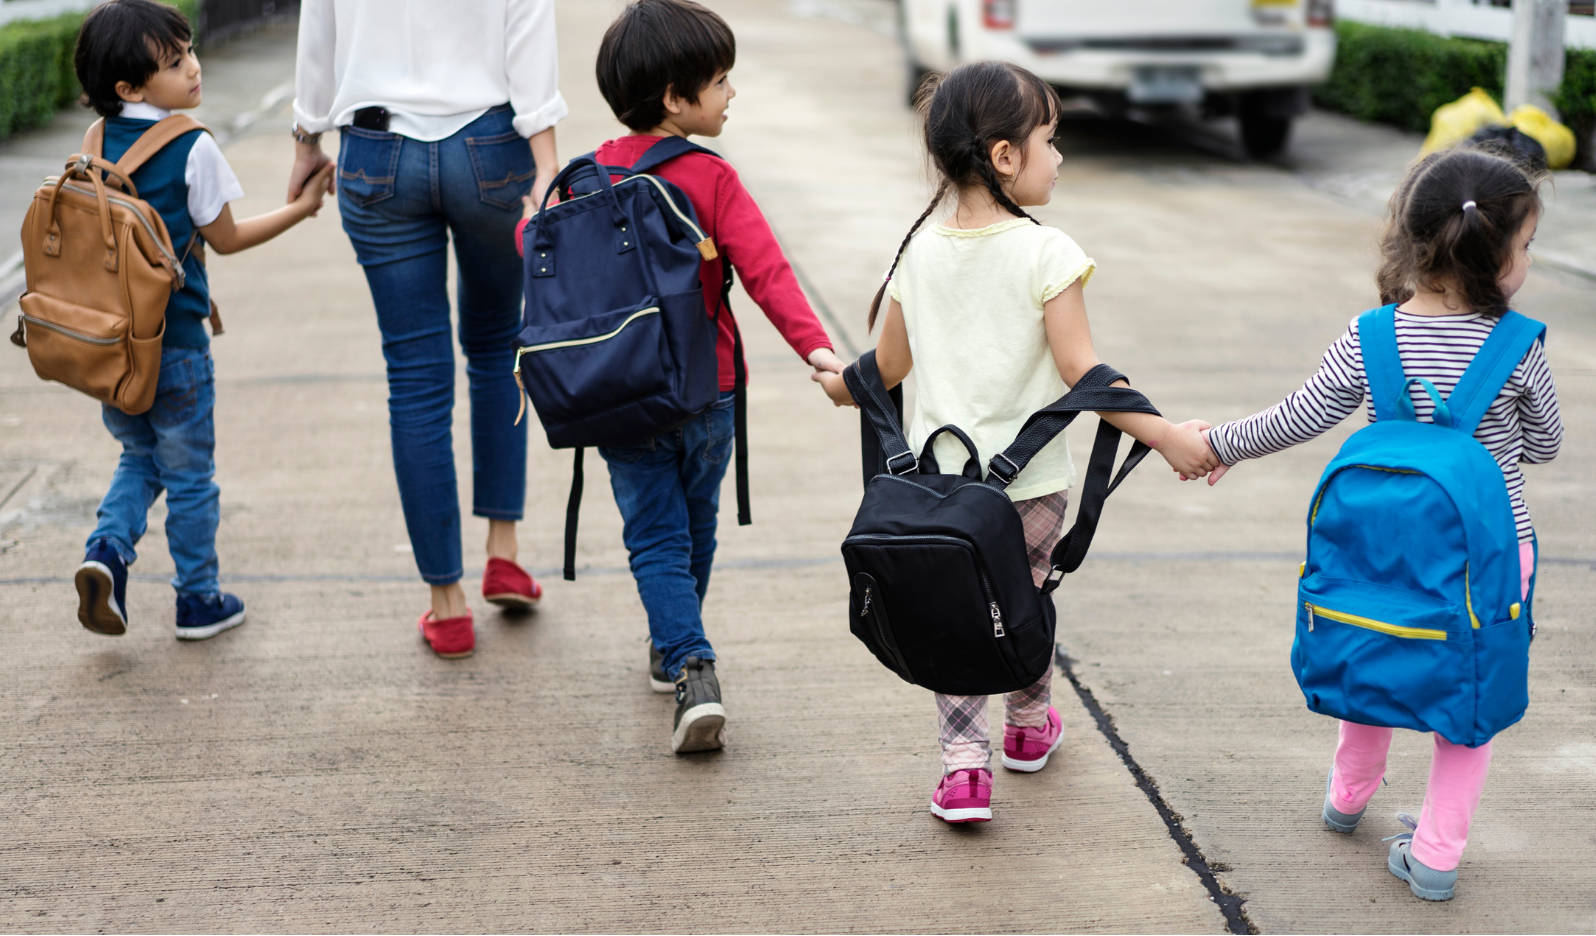 woman walking hand-in-hand with four young children